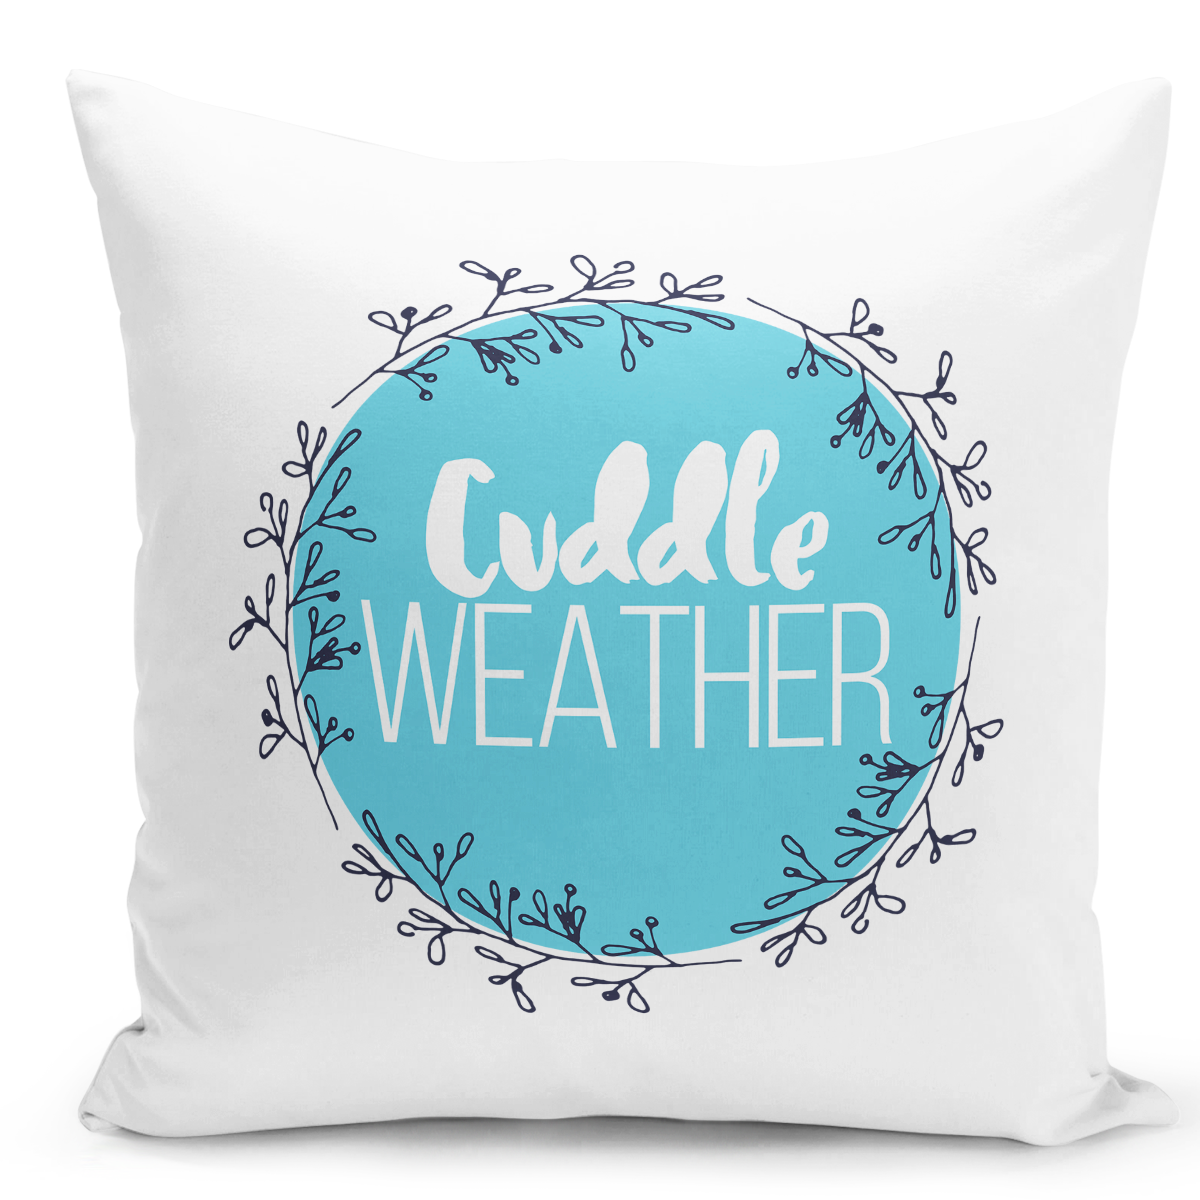 16x16-inch-Throw-Pillow-for-Home-Decor-with-Stuffing-Floral-Cuddly-Weather-Couples-Pillow-